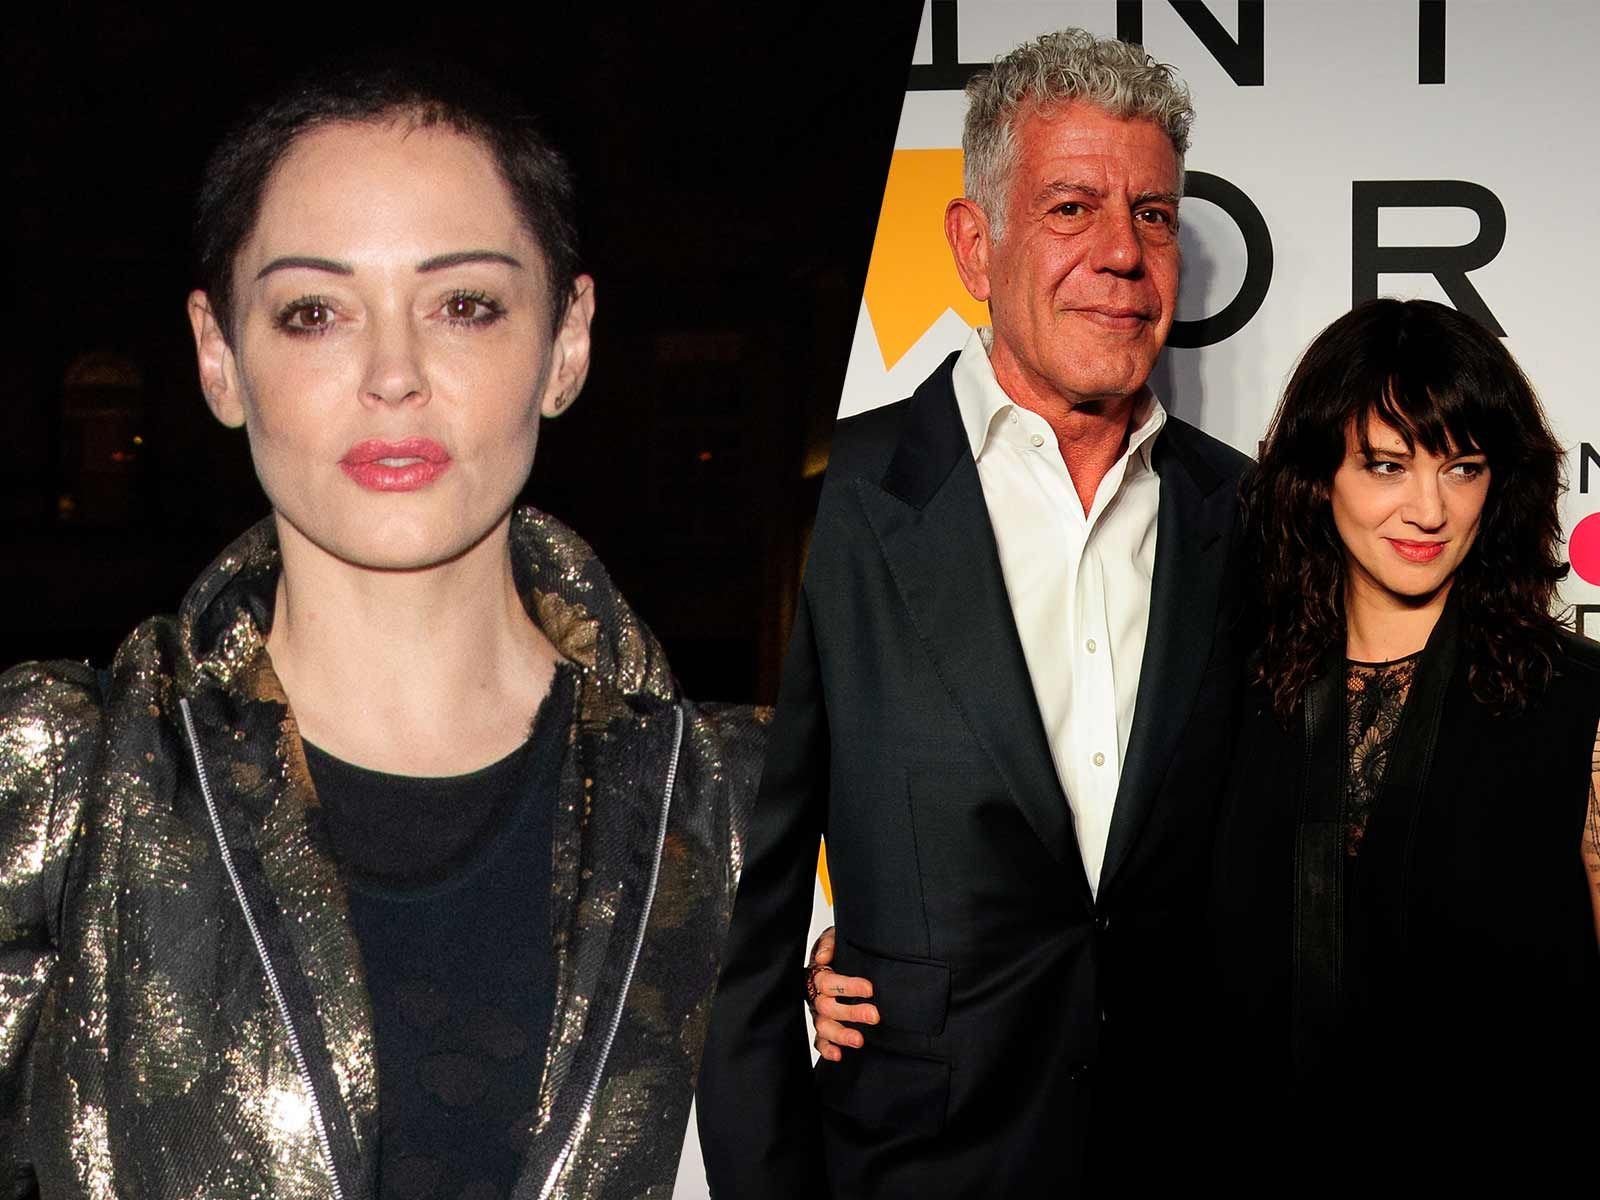 Rose McGowan, Asia Argento Ask People Not to Assign 'Blame